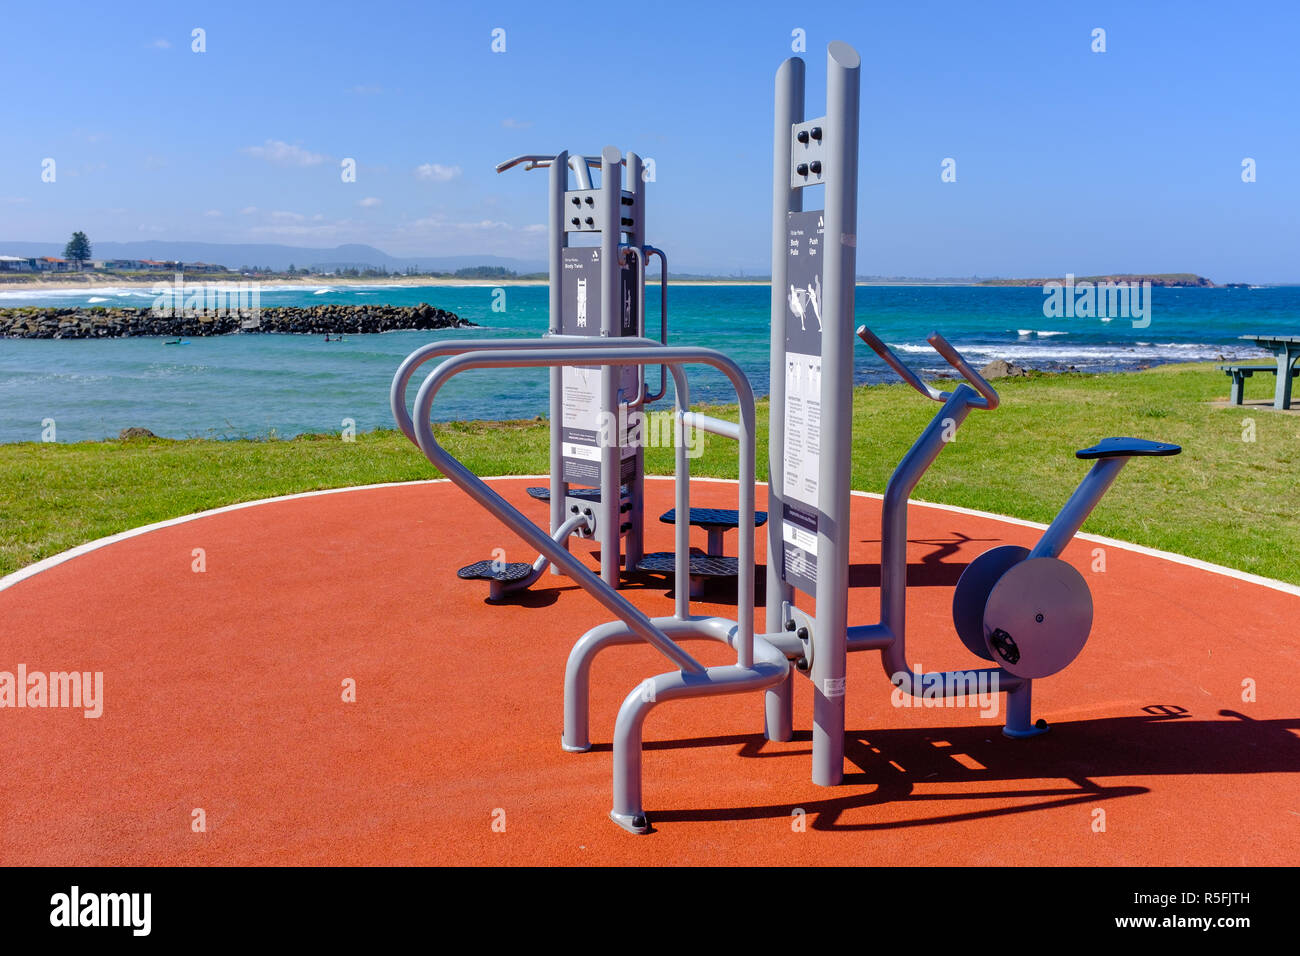 Fighting obesity, outside public exercise equipment, near beach by the local council to encourage people to stay healthy, lose weight and keep fit - Stock Image